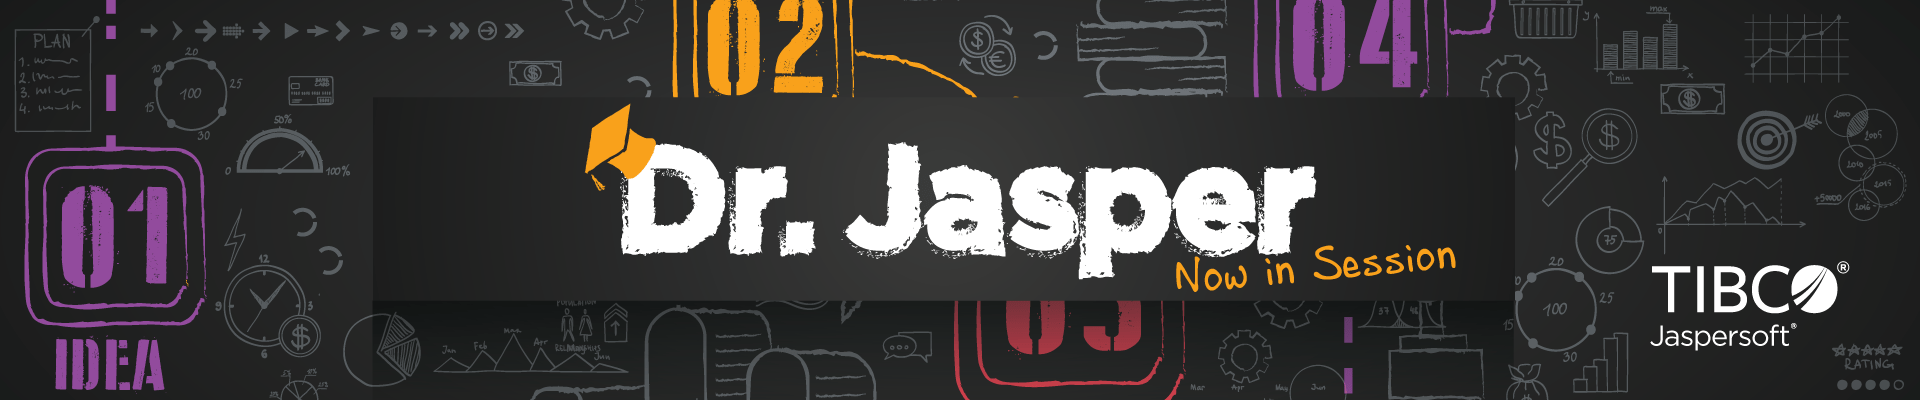 Dr. Jasper's Office Hours - February 2020